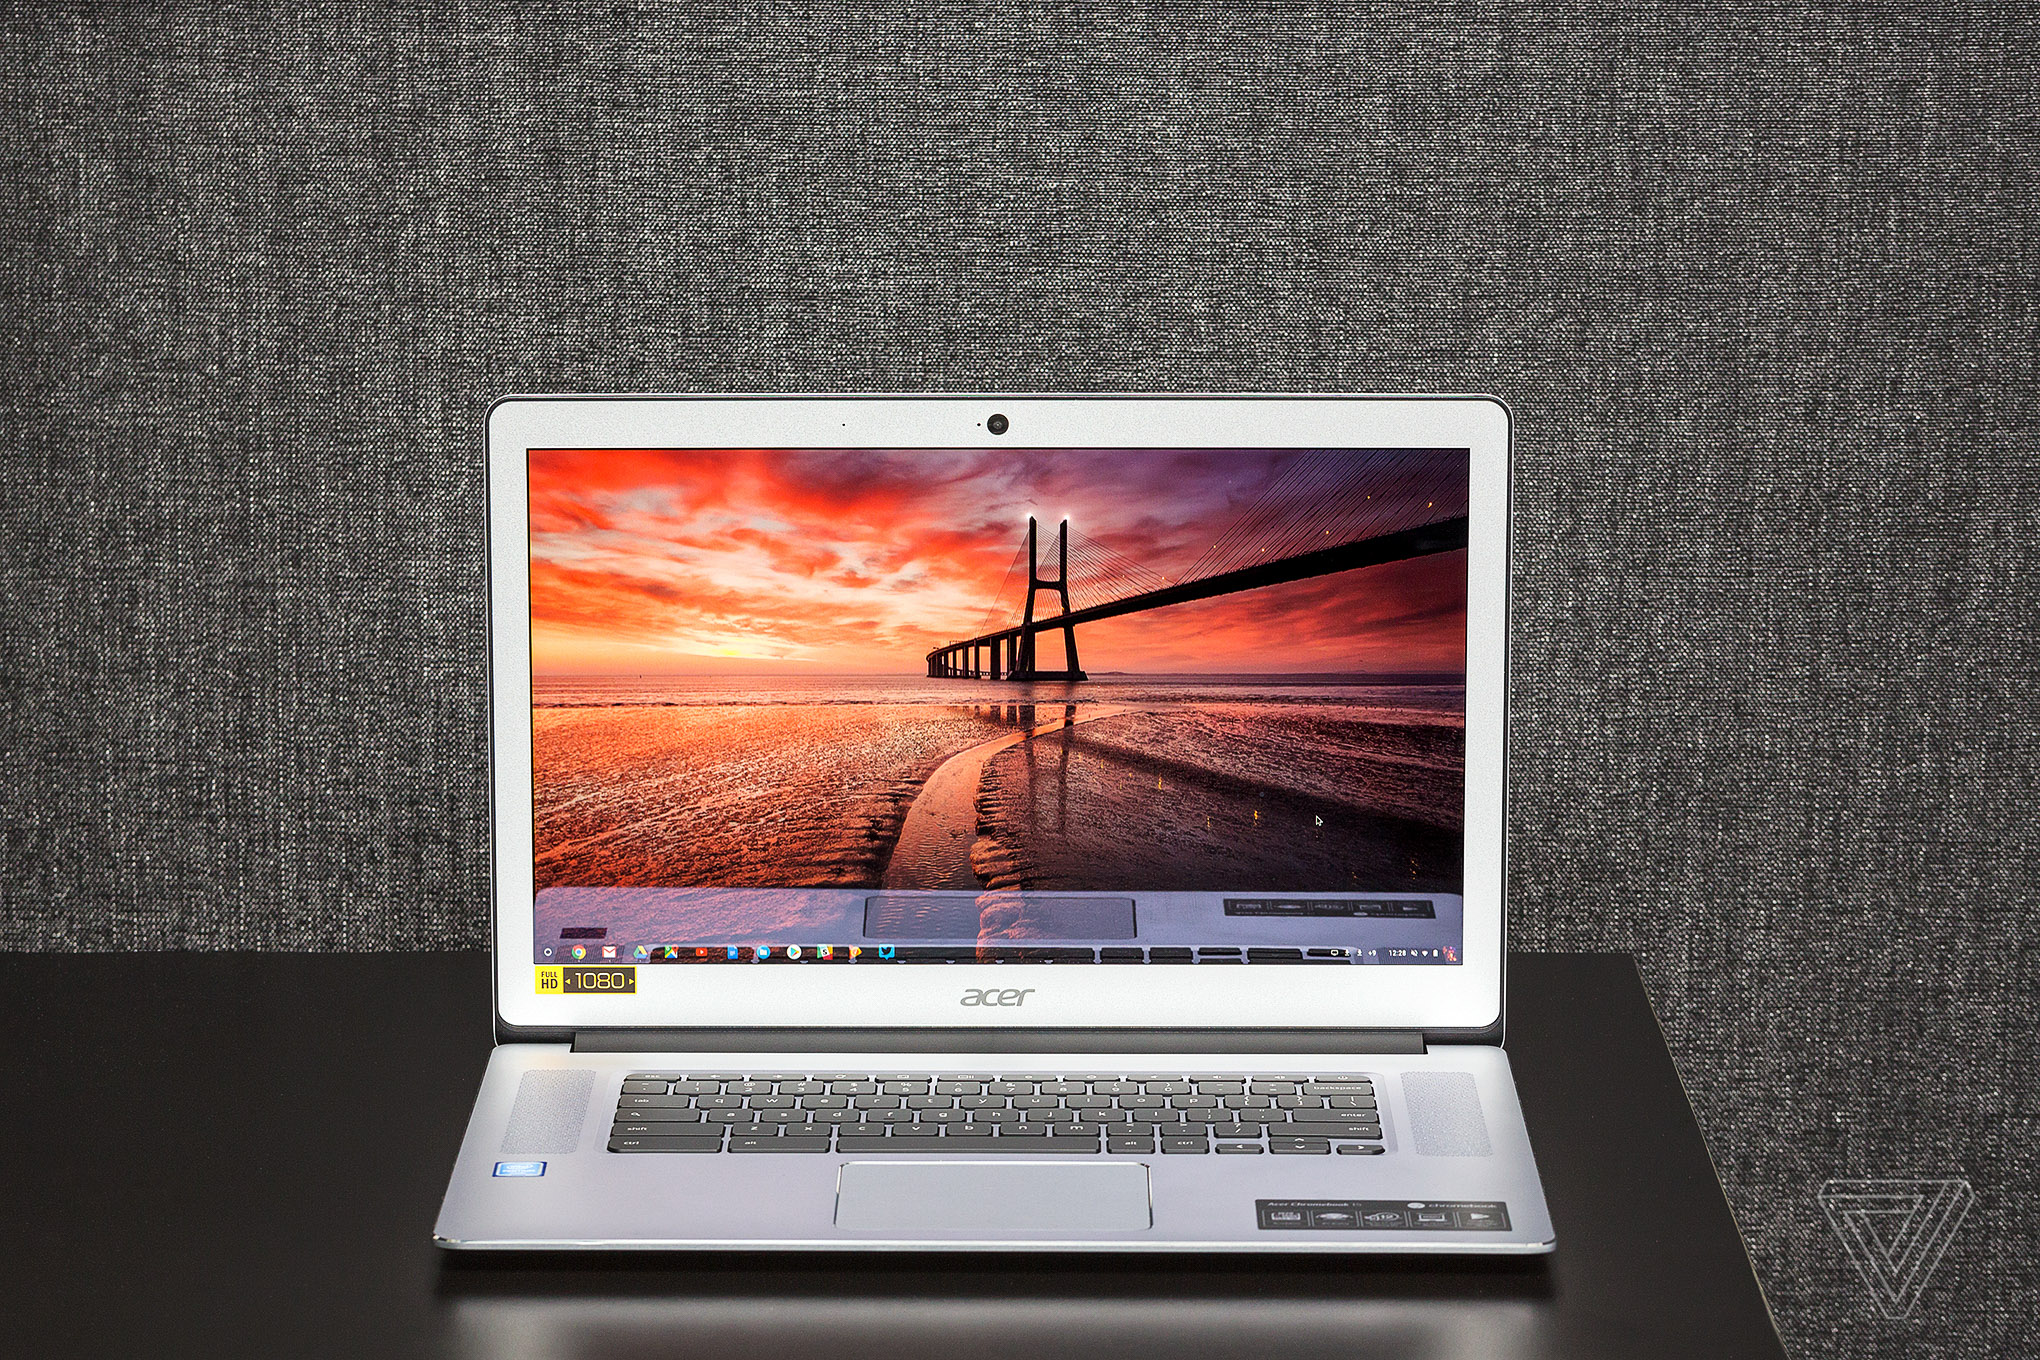 Acer Chromebook 15 (2017) review: bigger doesn't mean better